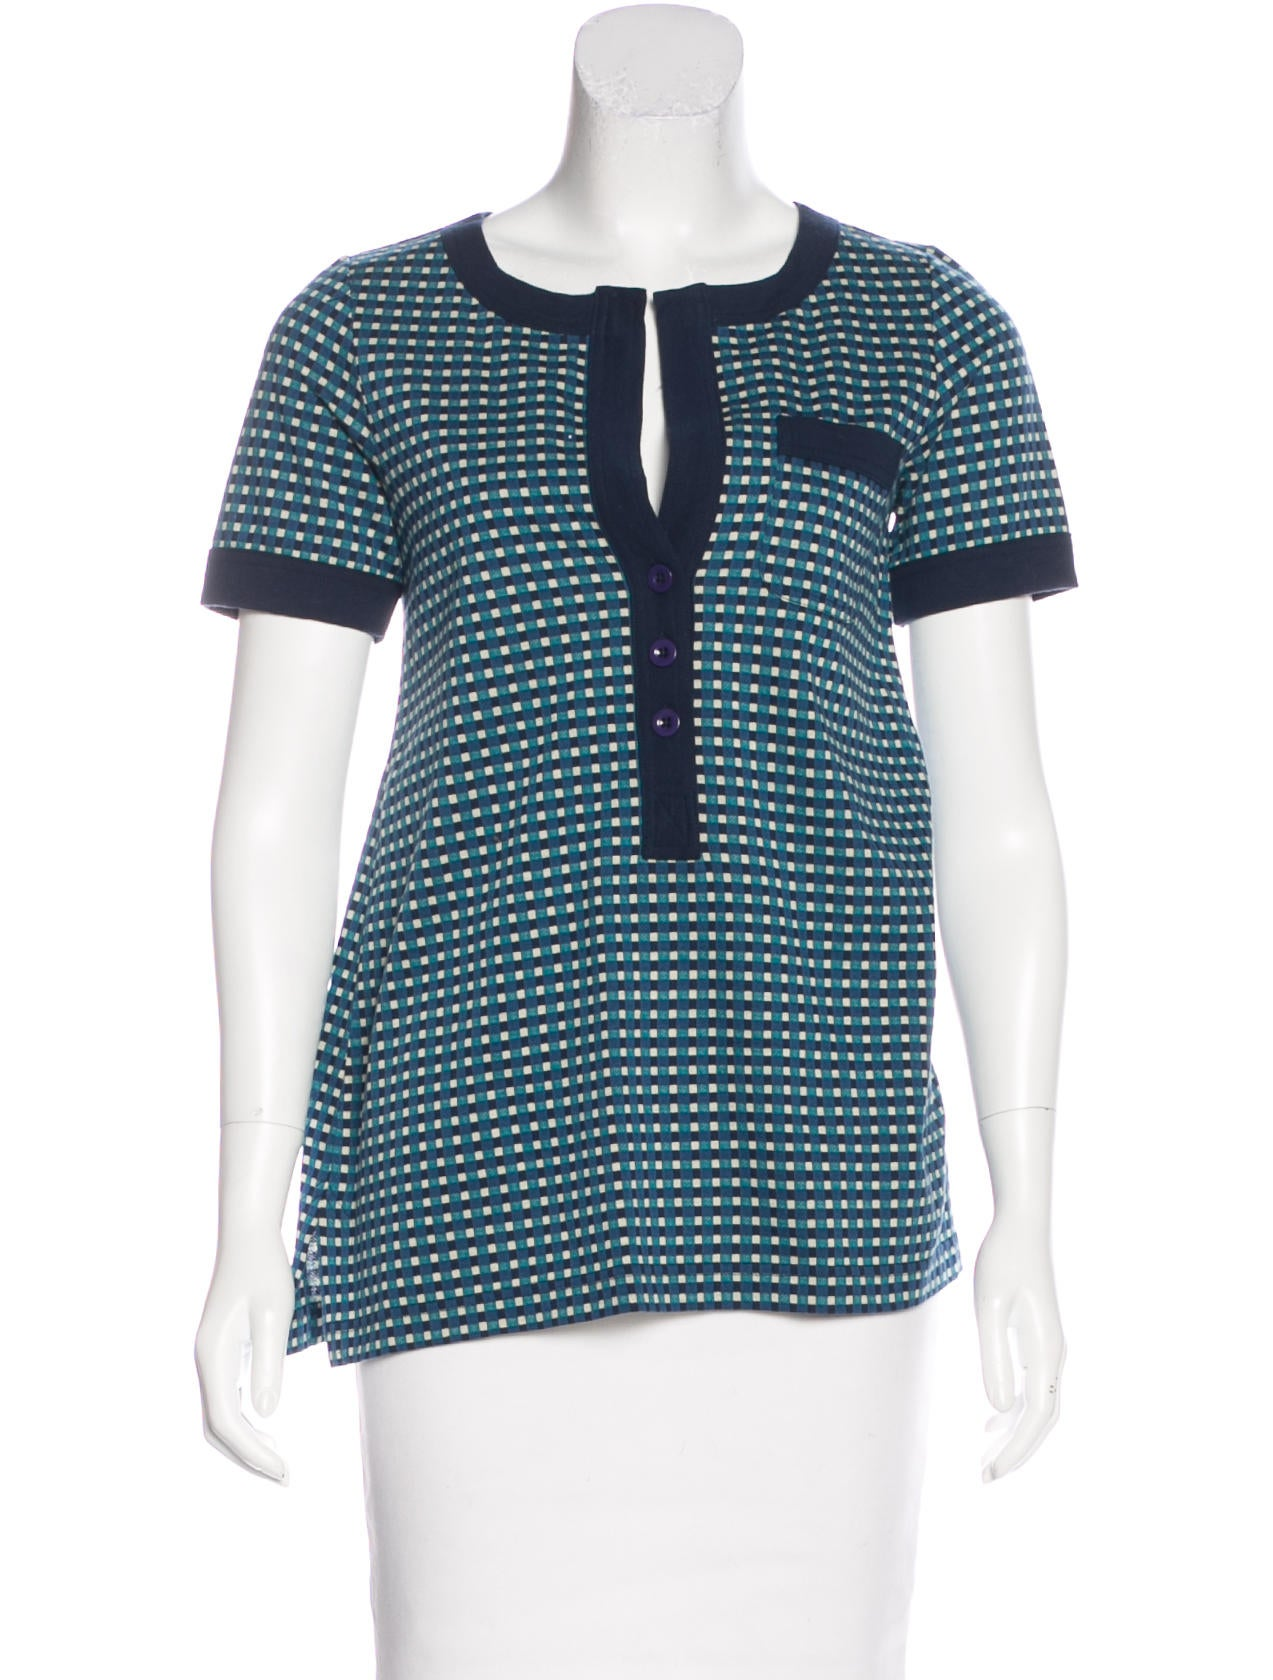 bc347701 Marc by Marc Jacobs Jacquard Knit Short Sleeve Top - Clothing ...